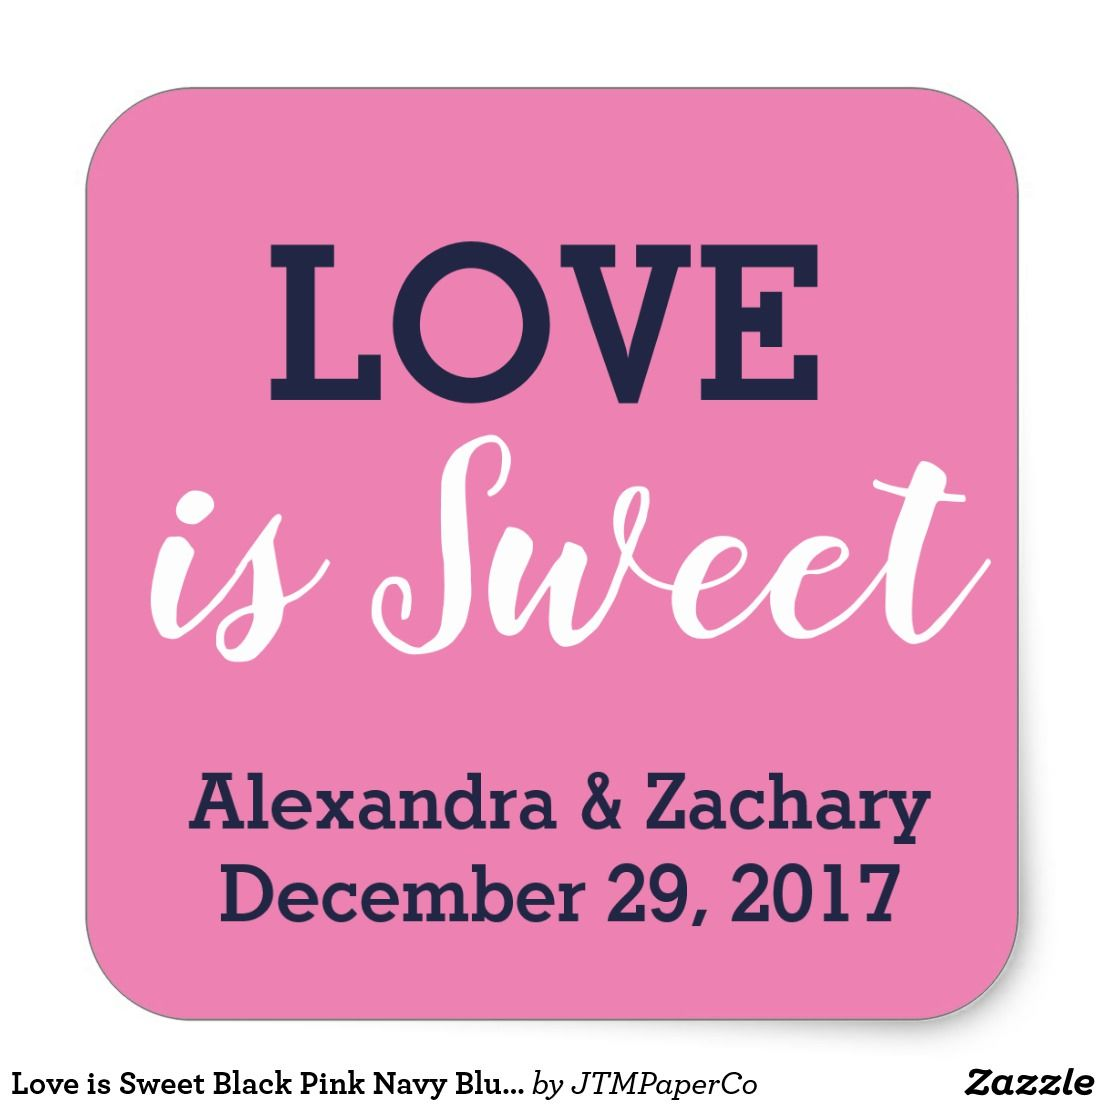 Love is Sweet Black Pink Navy Blue Engage Favor Square Sticker ...